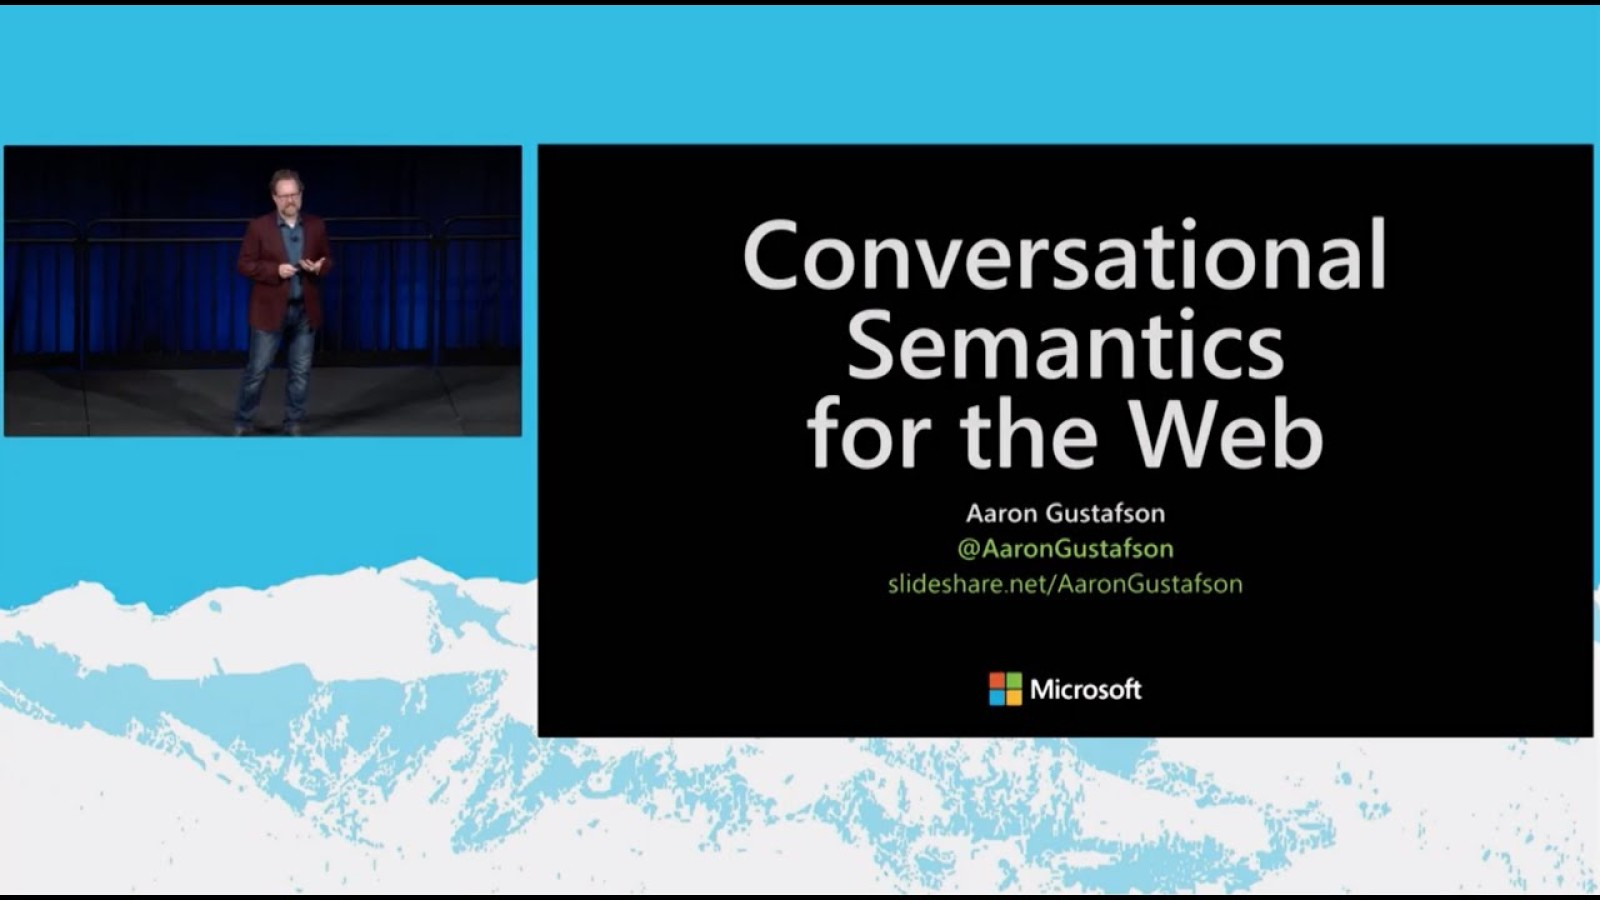 Conversational Semantics for the Web